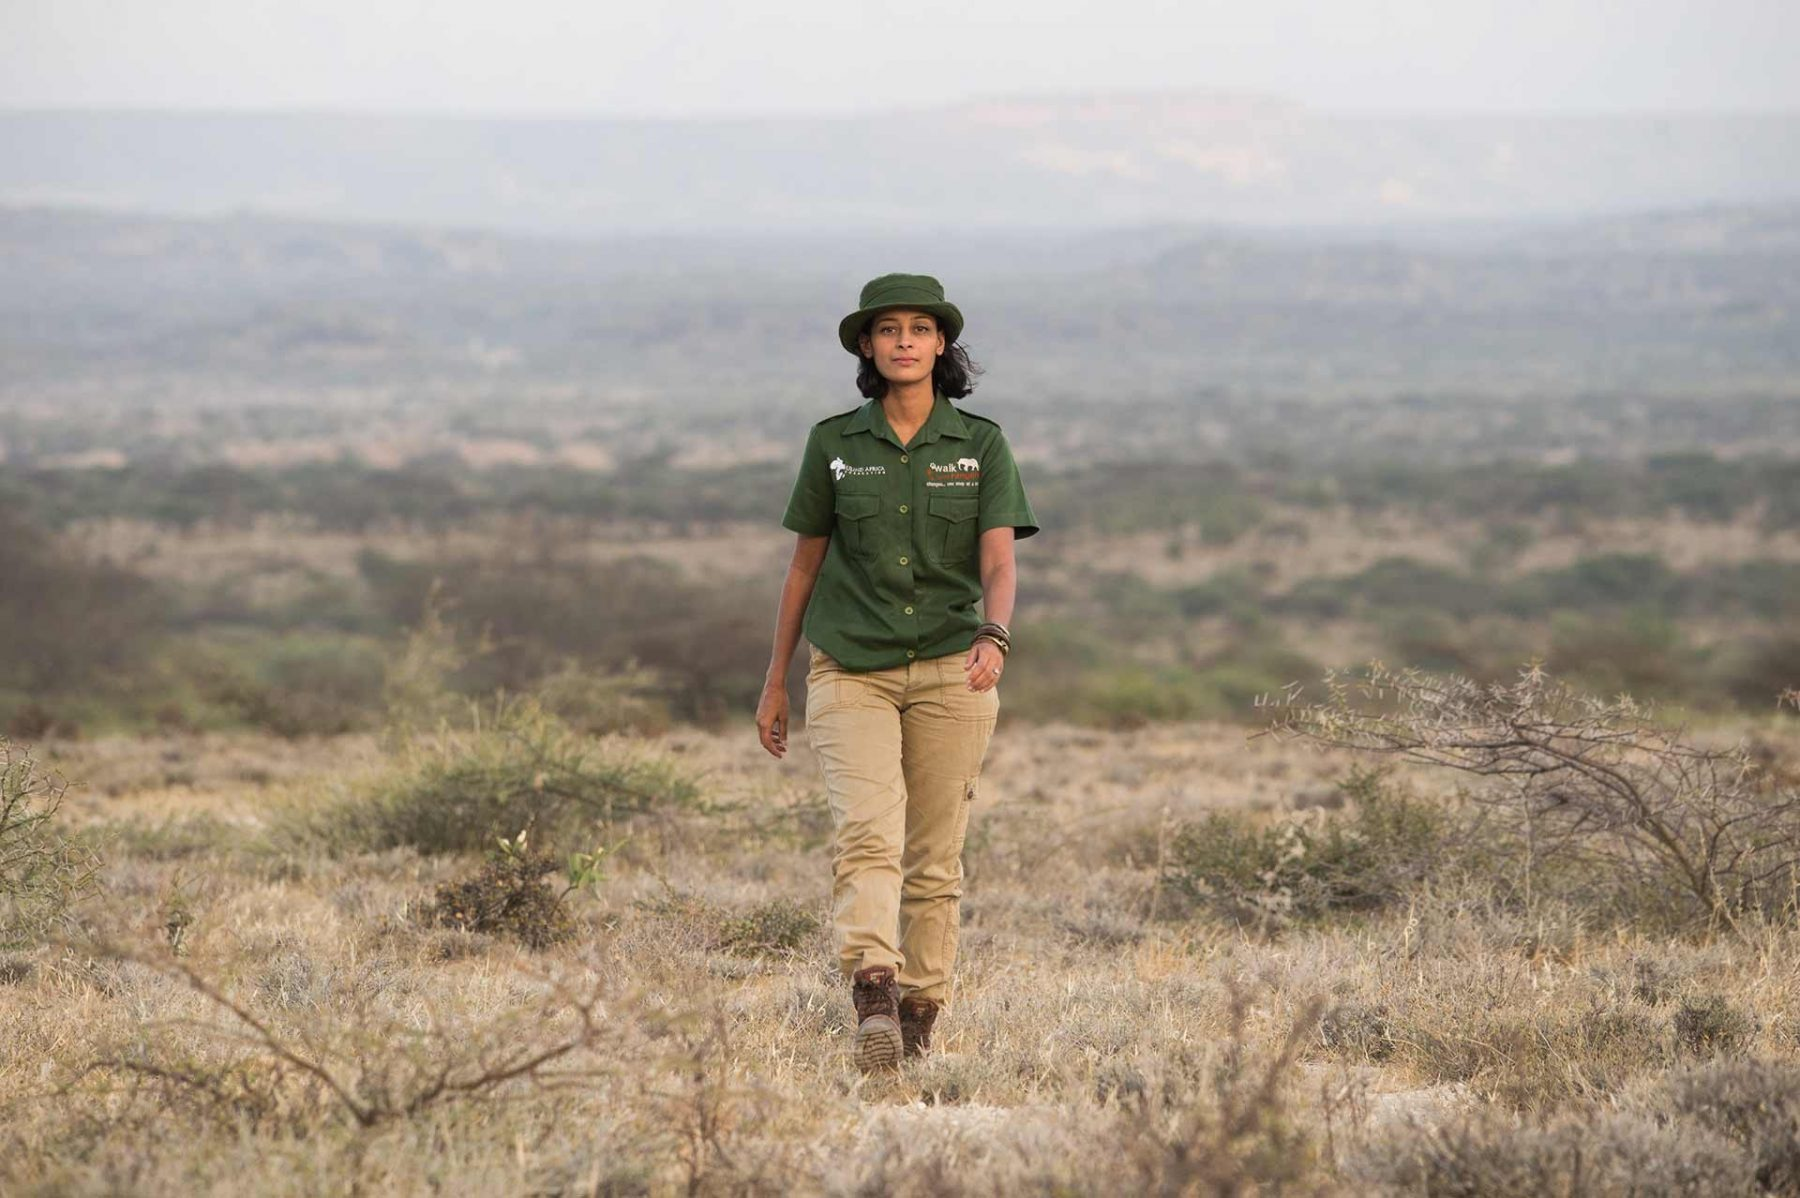 Raabia Hawa, founder of Walk with Rangers and the Ulinzi Africa Foundation. She is the first female Muslim honorary ranger with the Kenyan Wildlife Services. Kenya, 2016